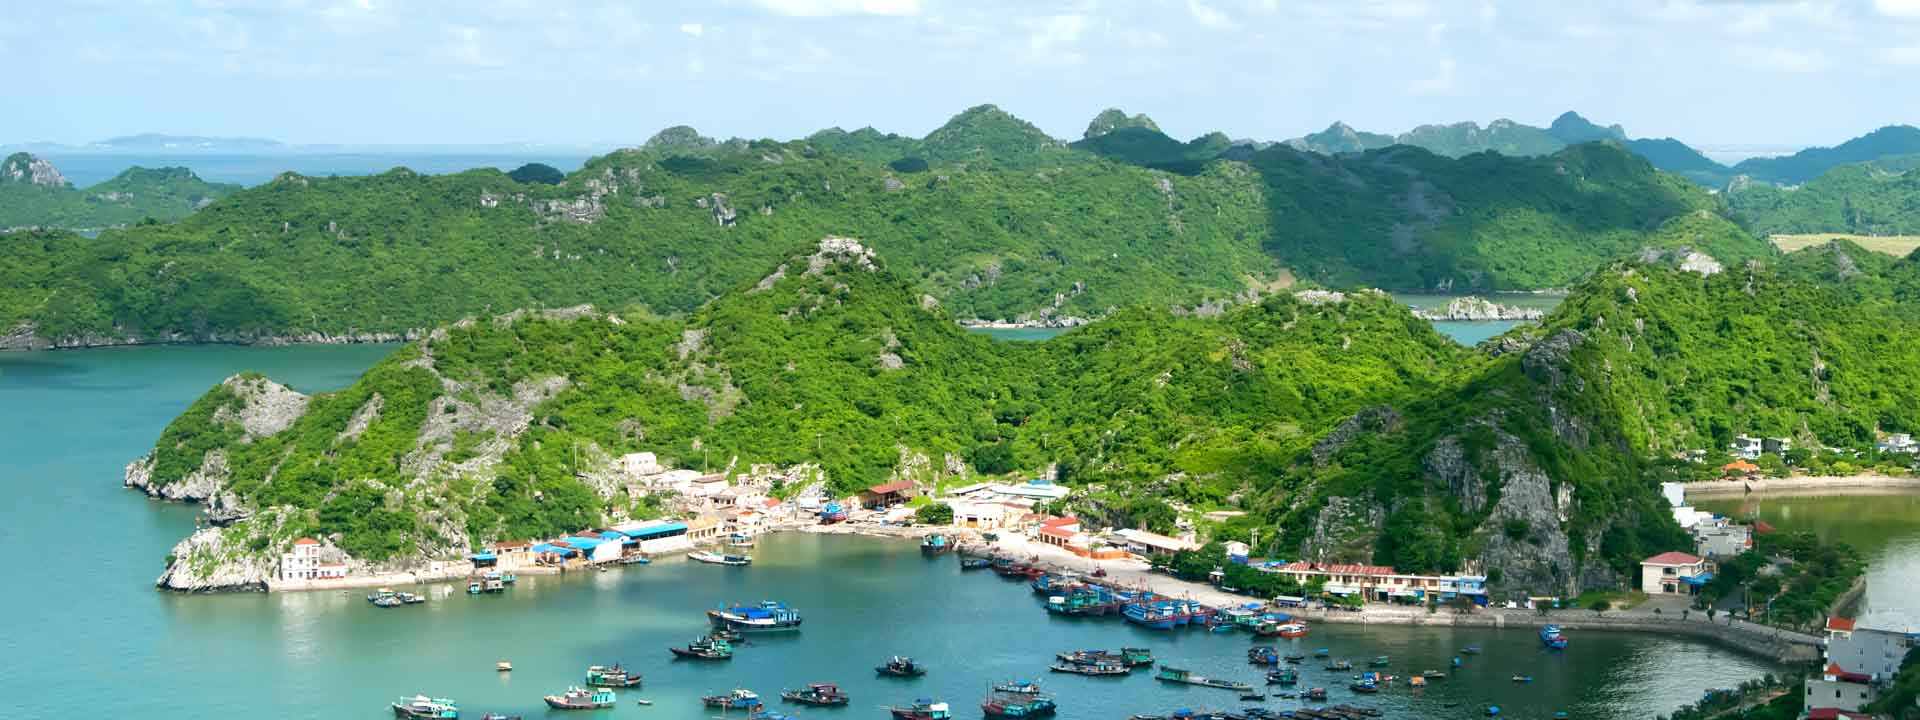 Island Life Experience for 4 days in Cat Ba Island